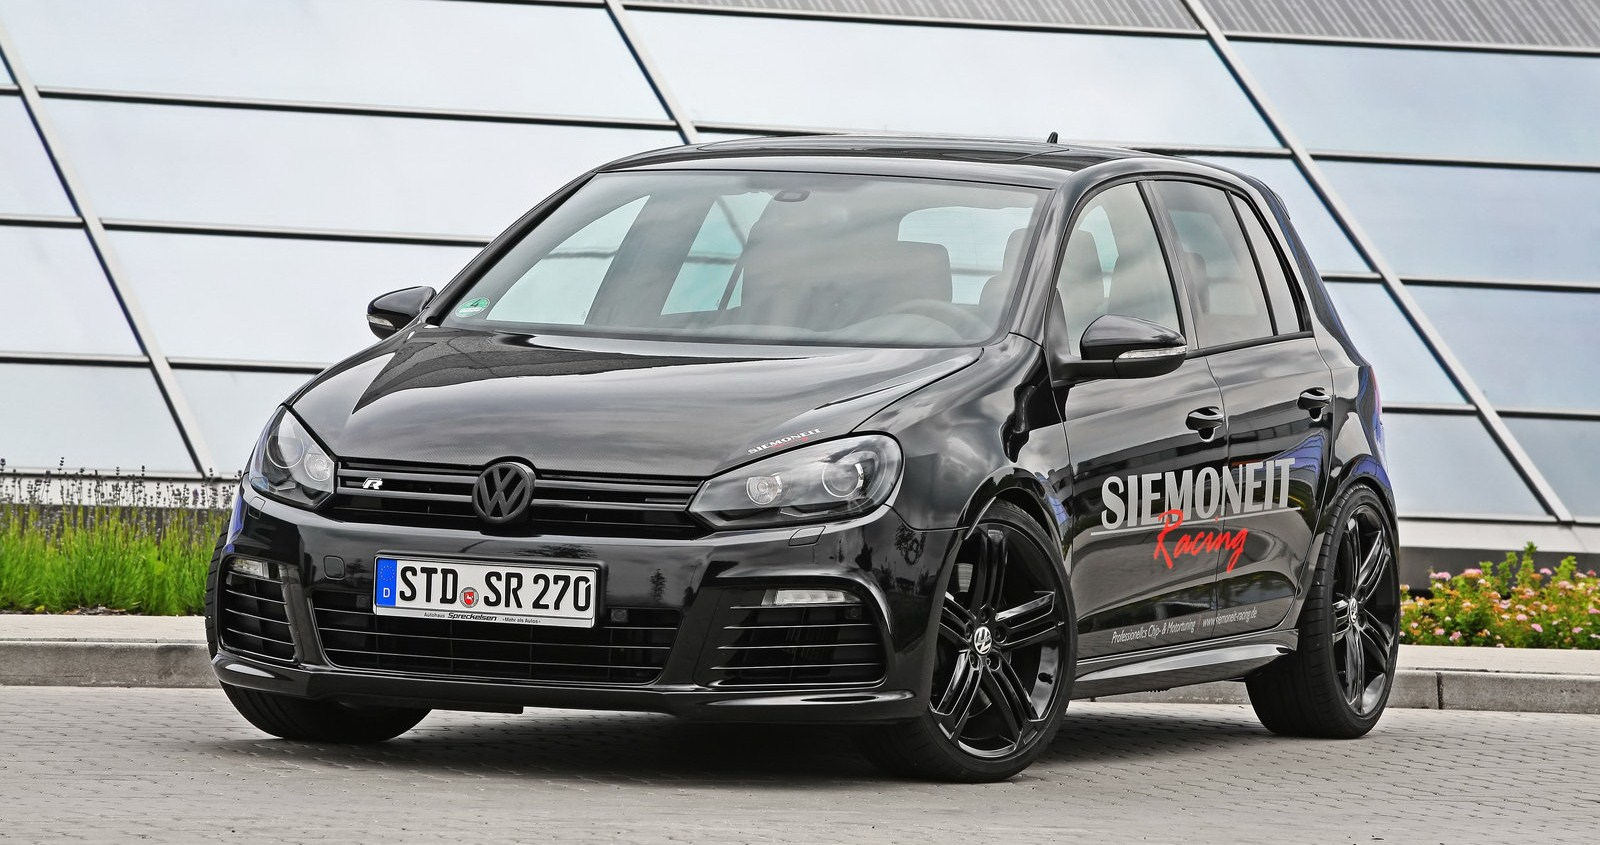 vw golf r tuned by siemoneit racing with 530hp. Black Bedroom Furniture Sets. Home Design Ideas